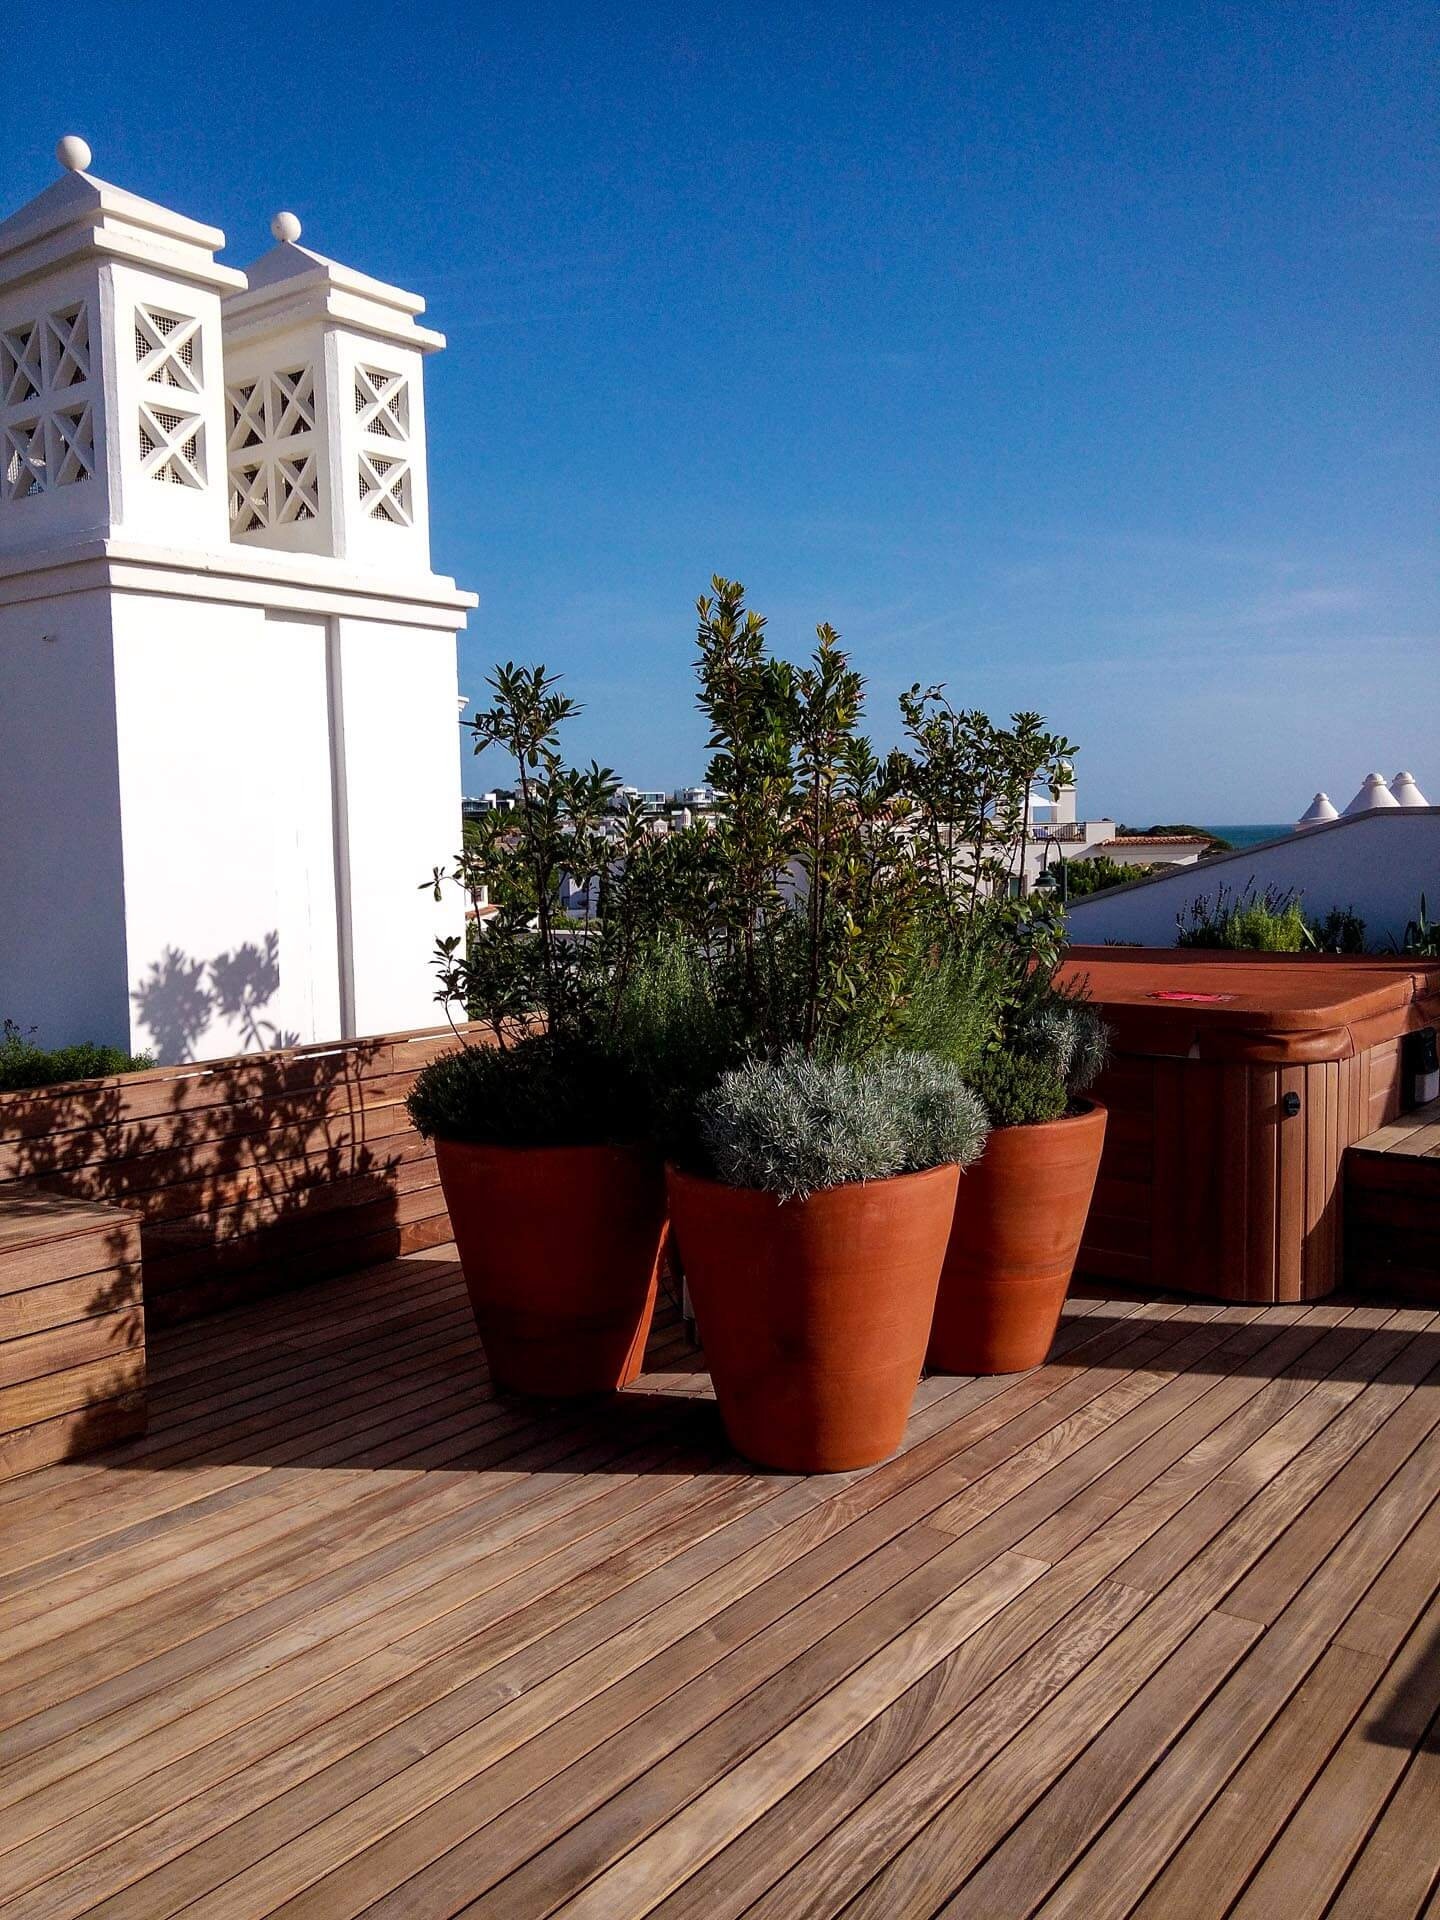 condominium roof terrace with vases